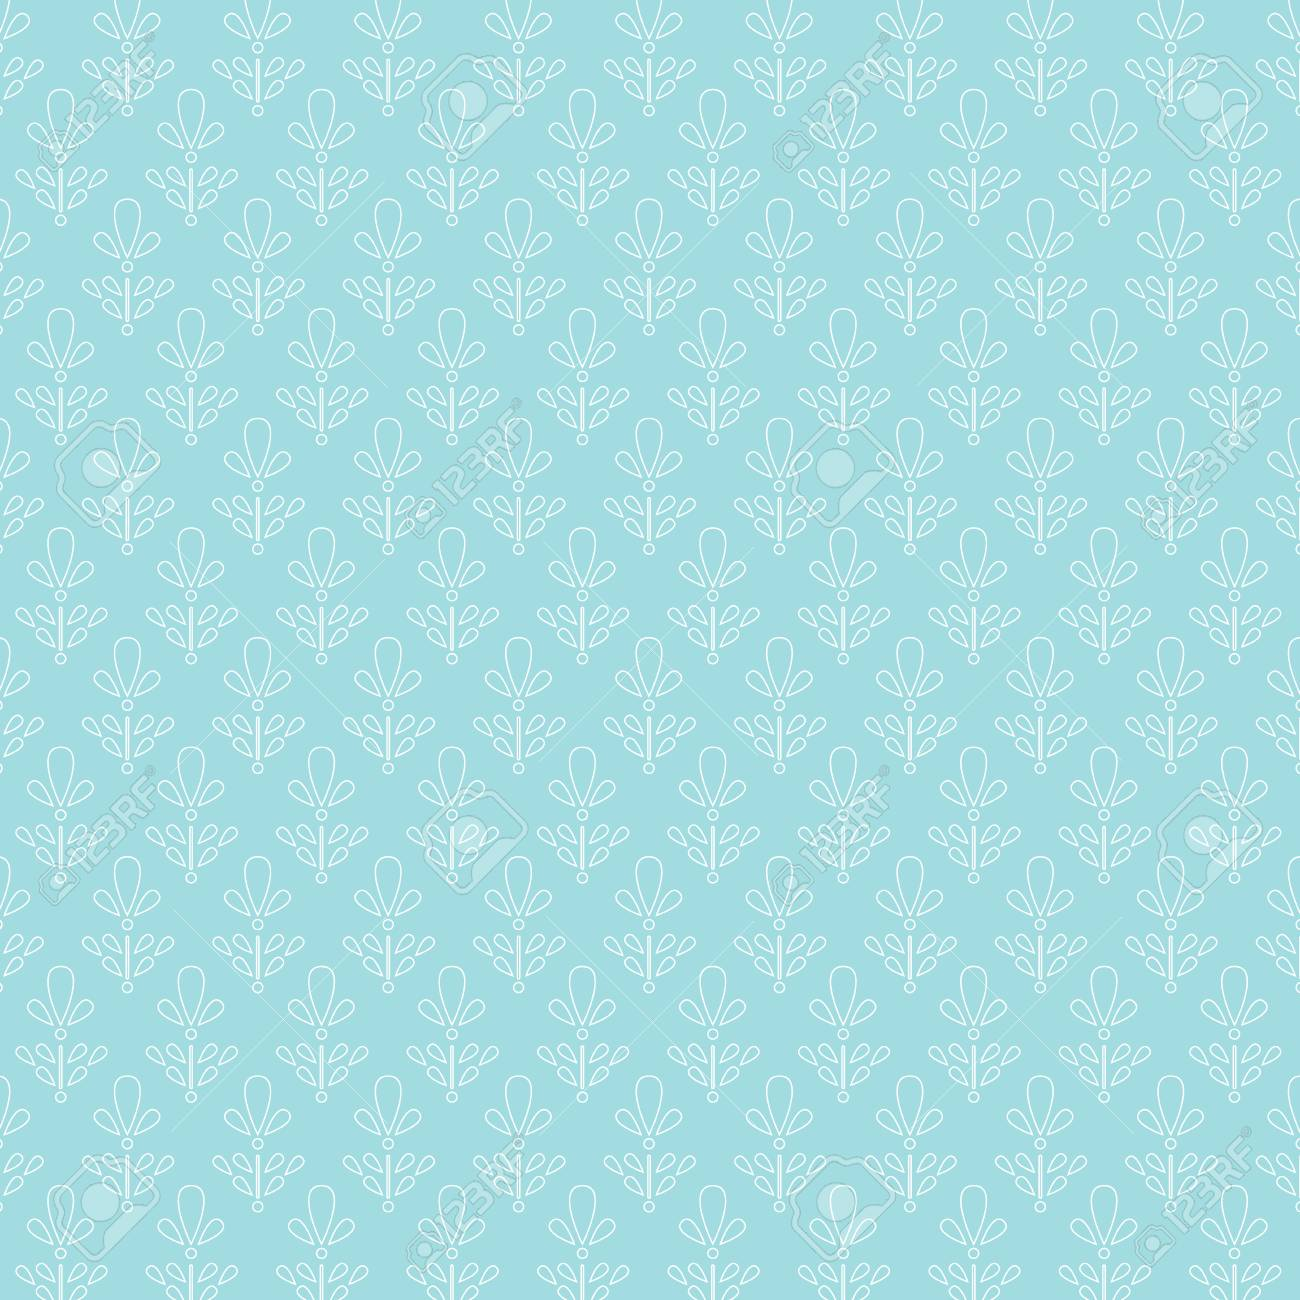 Hand drawn pattern of flowers outline in pale turquoise and mint colors background. Vector illustration